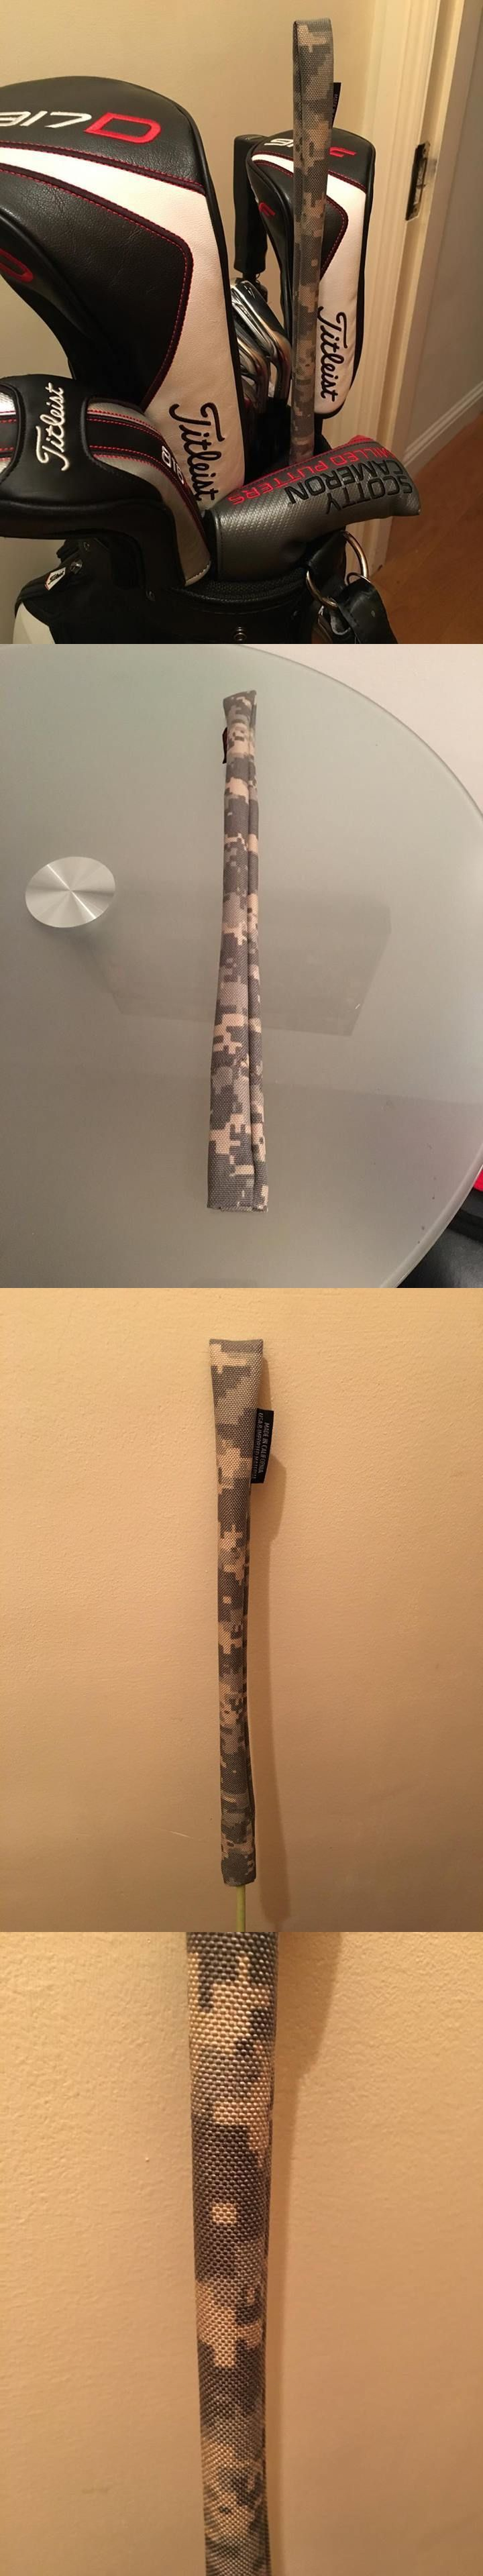 Other Golf Training Aids 14109: *Alignment Golf Stick Camouflage Cover* -> BUY IT NOW ONLY: $30 on eBay!